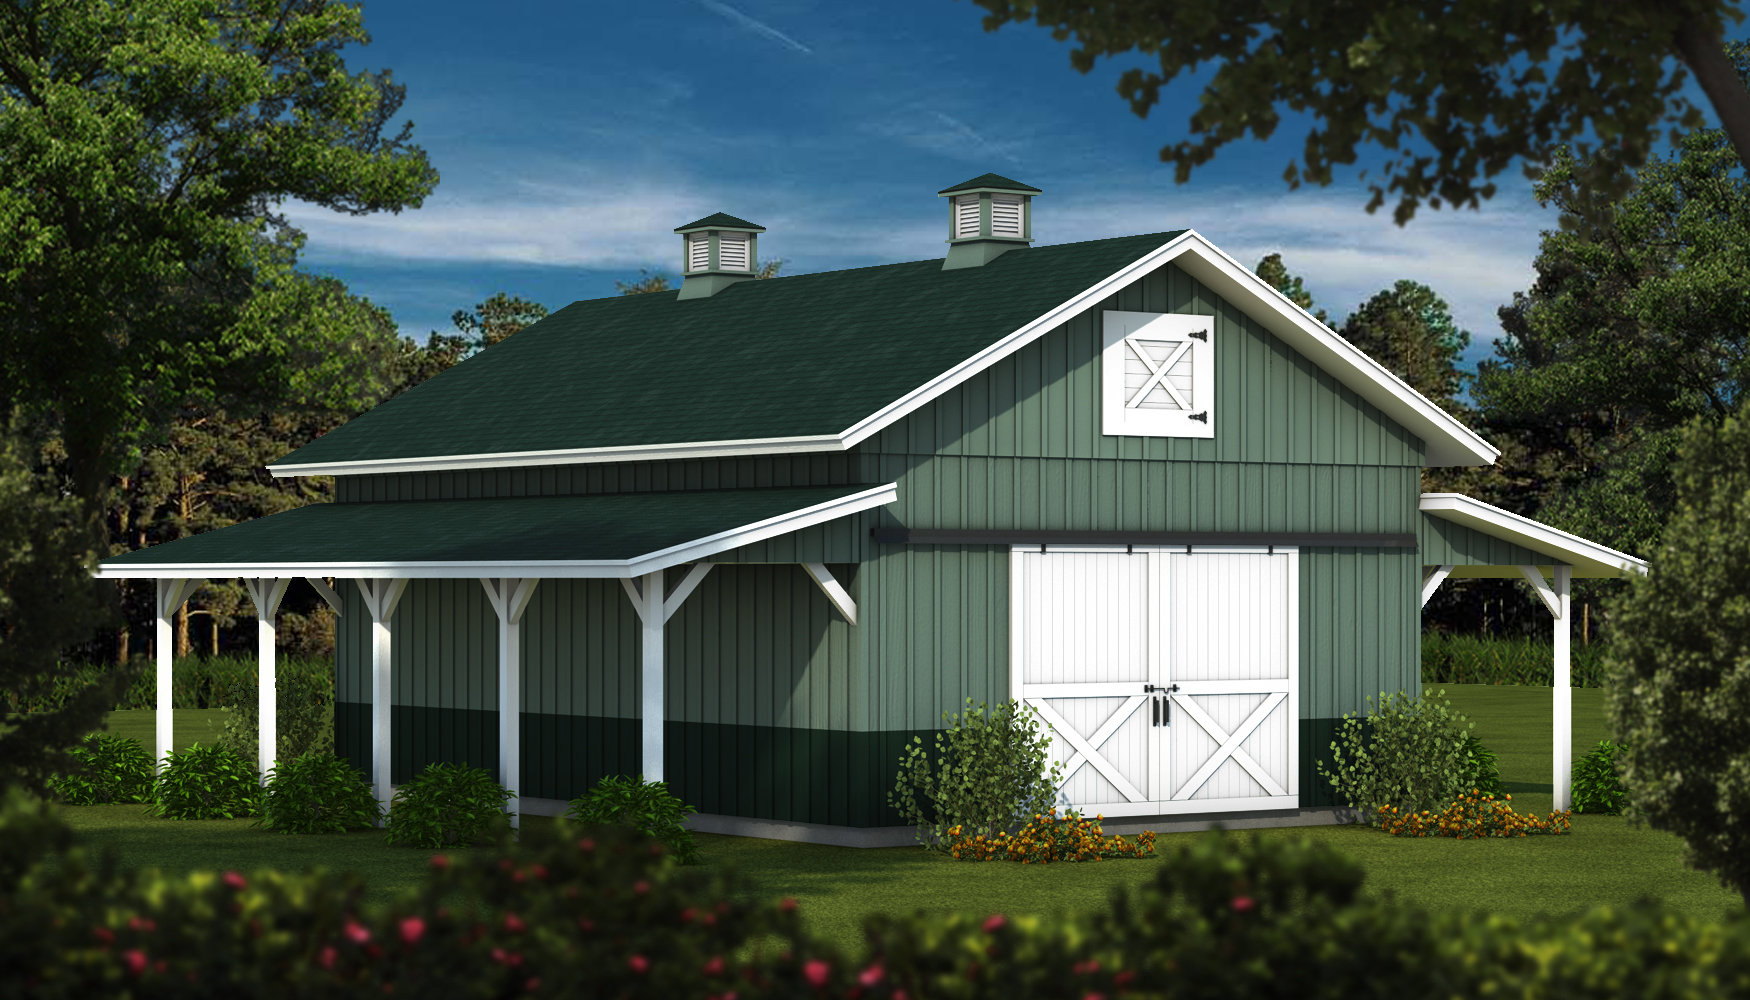 Barn Style House Plans Ireland moreover Rustic Barn Inspired Homes additionally Post Beam Barn And Writer Retreat New Construction besides Blog Entry 61 together with Converting An Old Horse Barn In Pennsylvania. on pole barns into homes